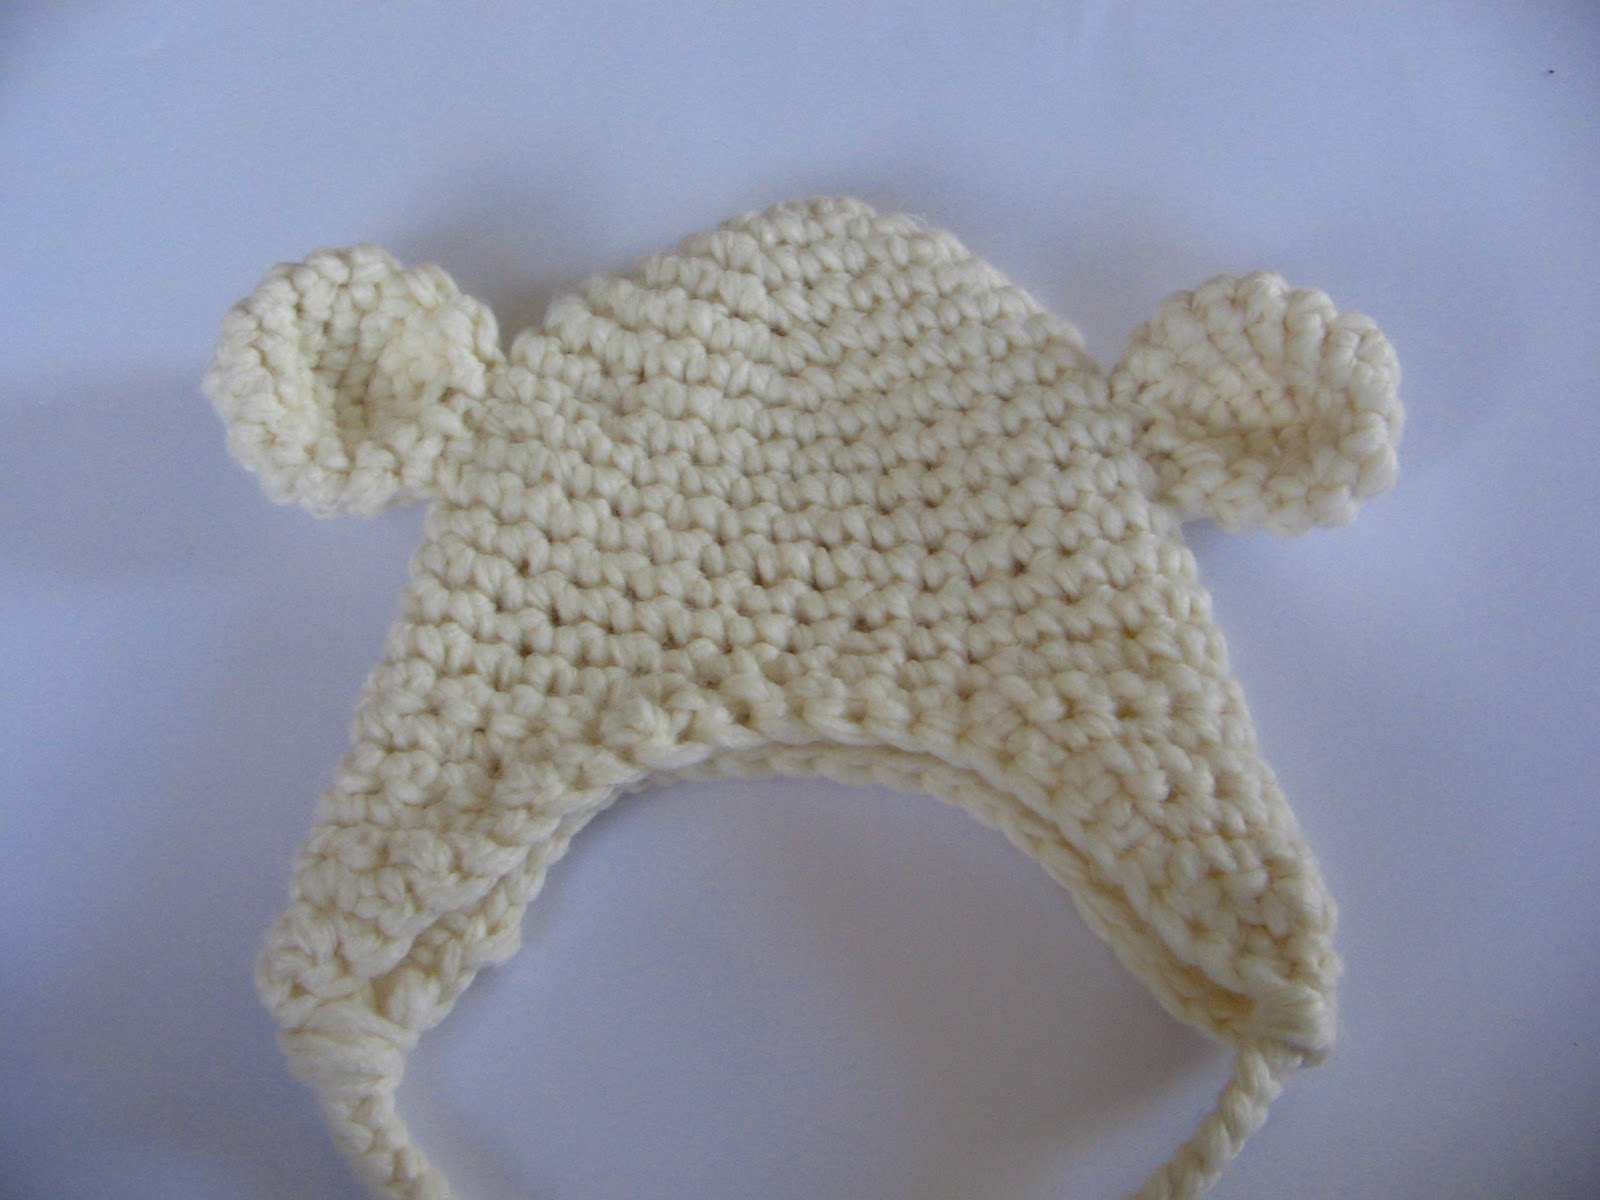 Crochet Baby Teddy Bear Hat Pattern : how to crohet bear hat free pattern